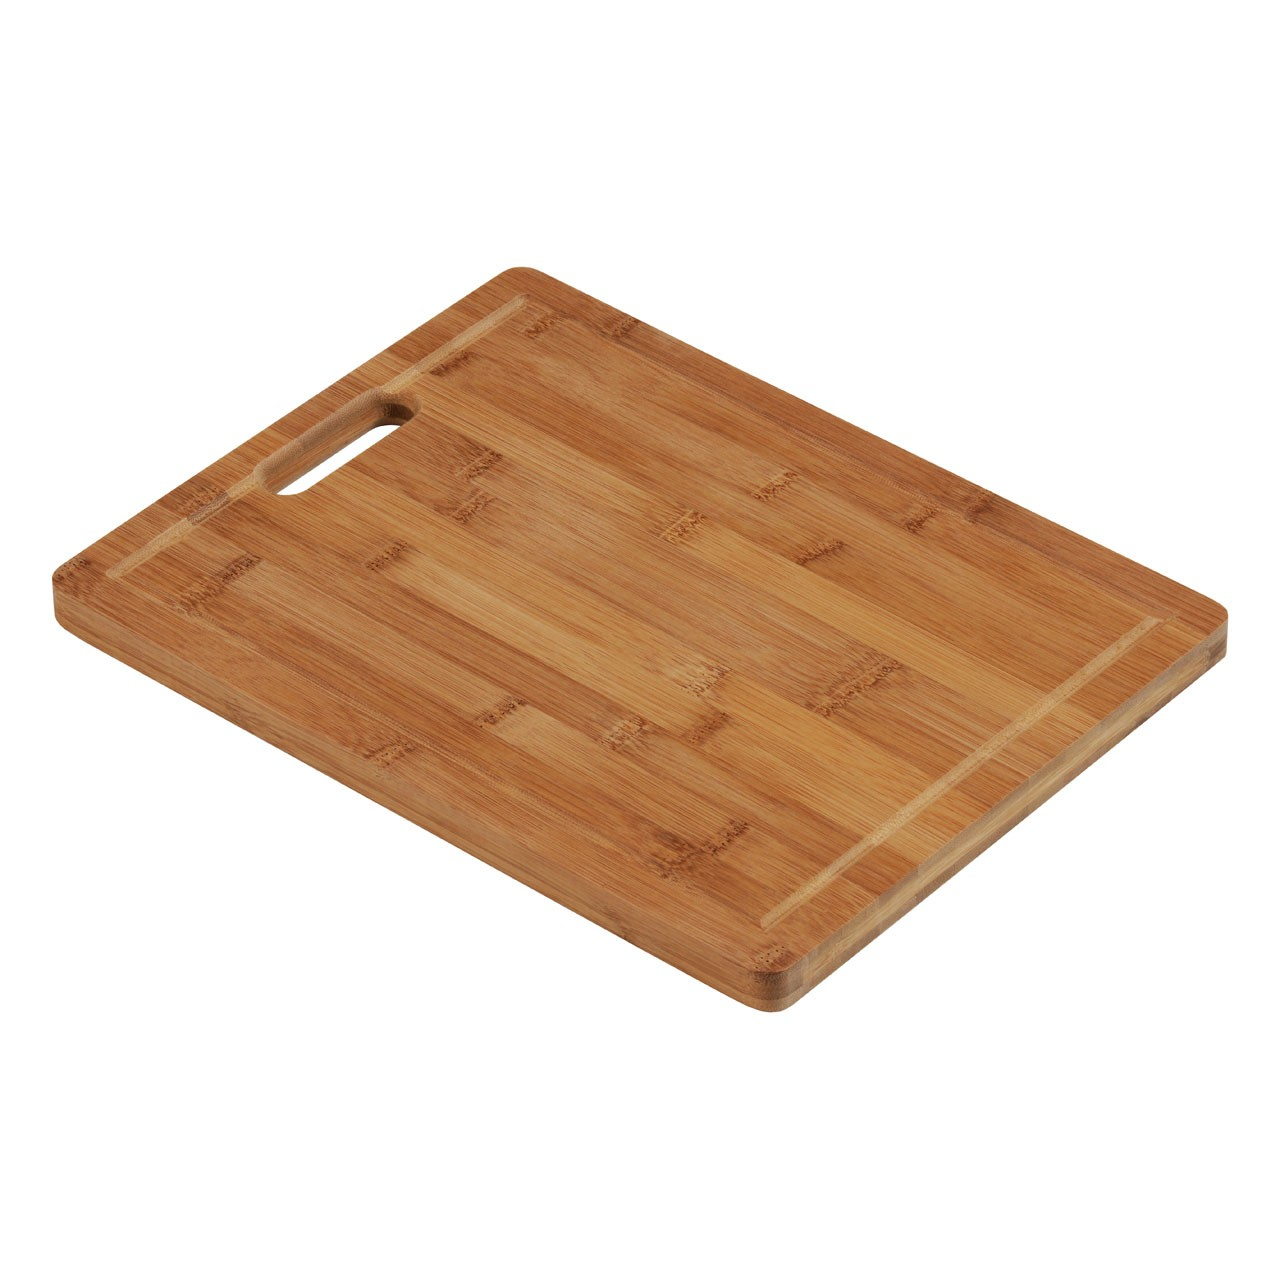 Chopping Board, Bamboo, With Handle - Set Of 2